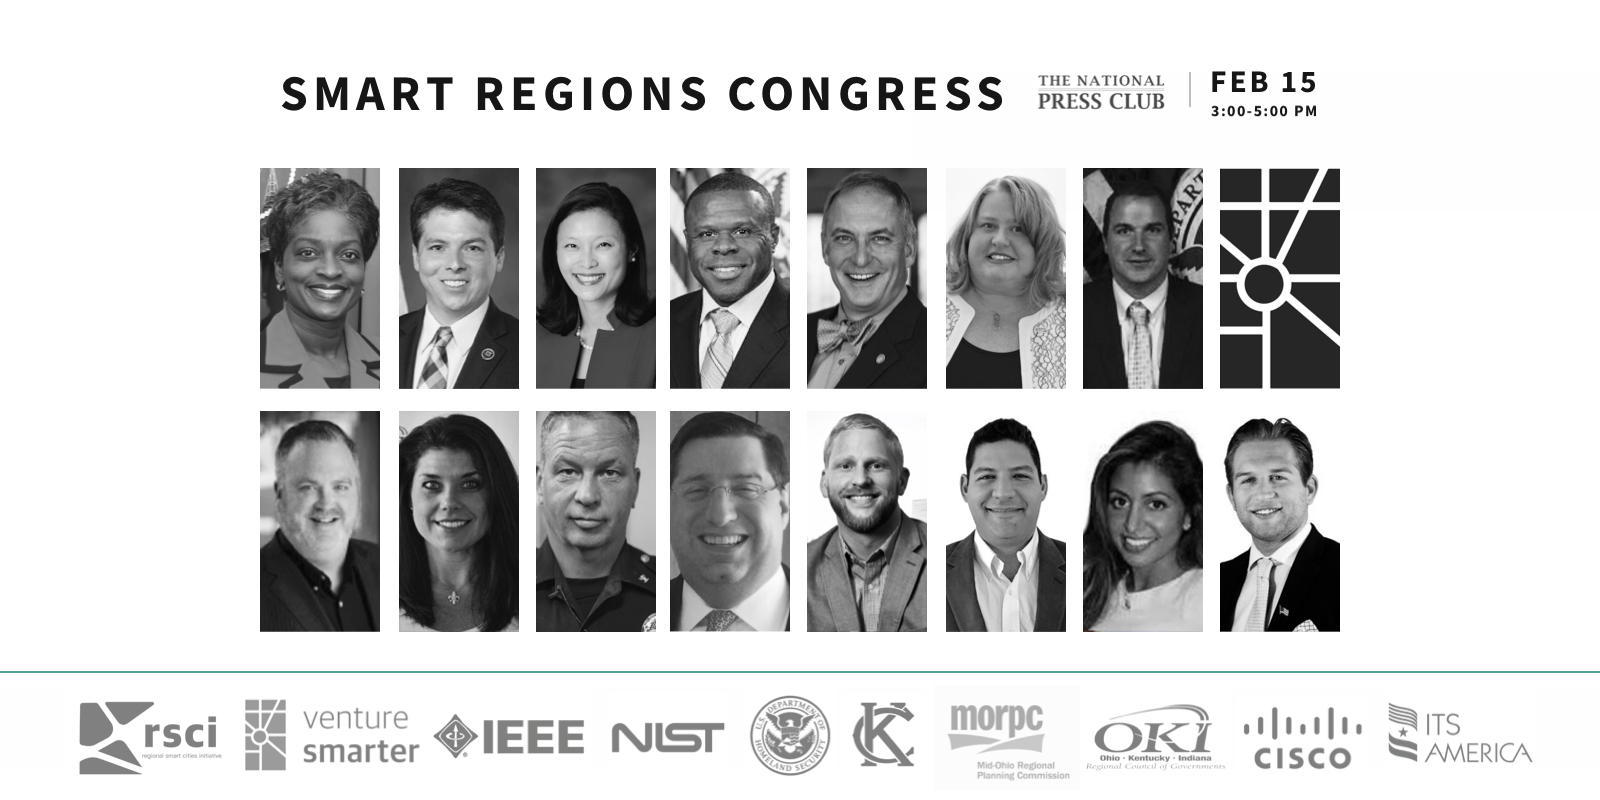 Leaders announce a shared vision, launch the 2018 Smart Infrastructure Challenge at the Smart Regions Congress